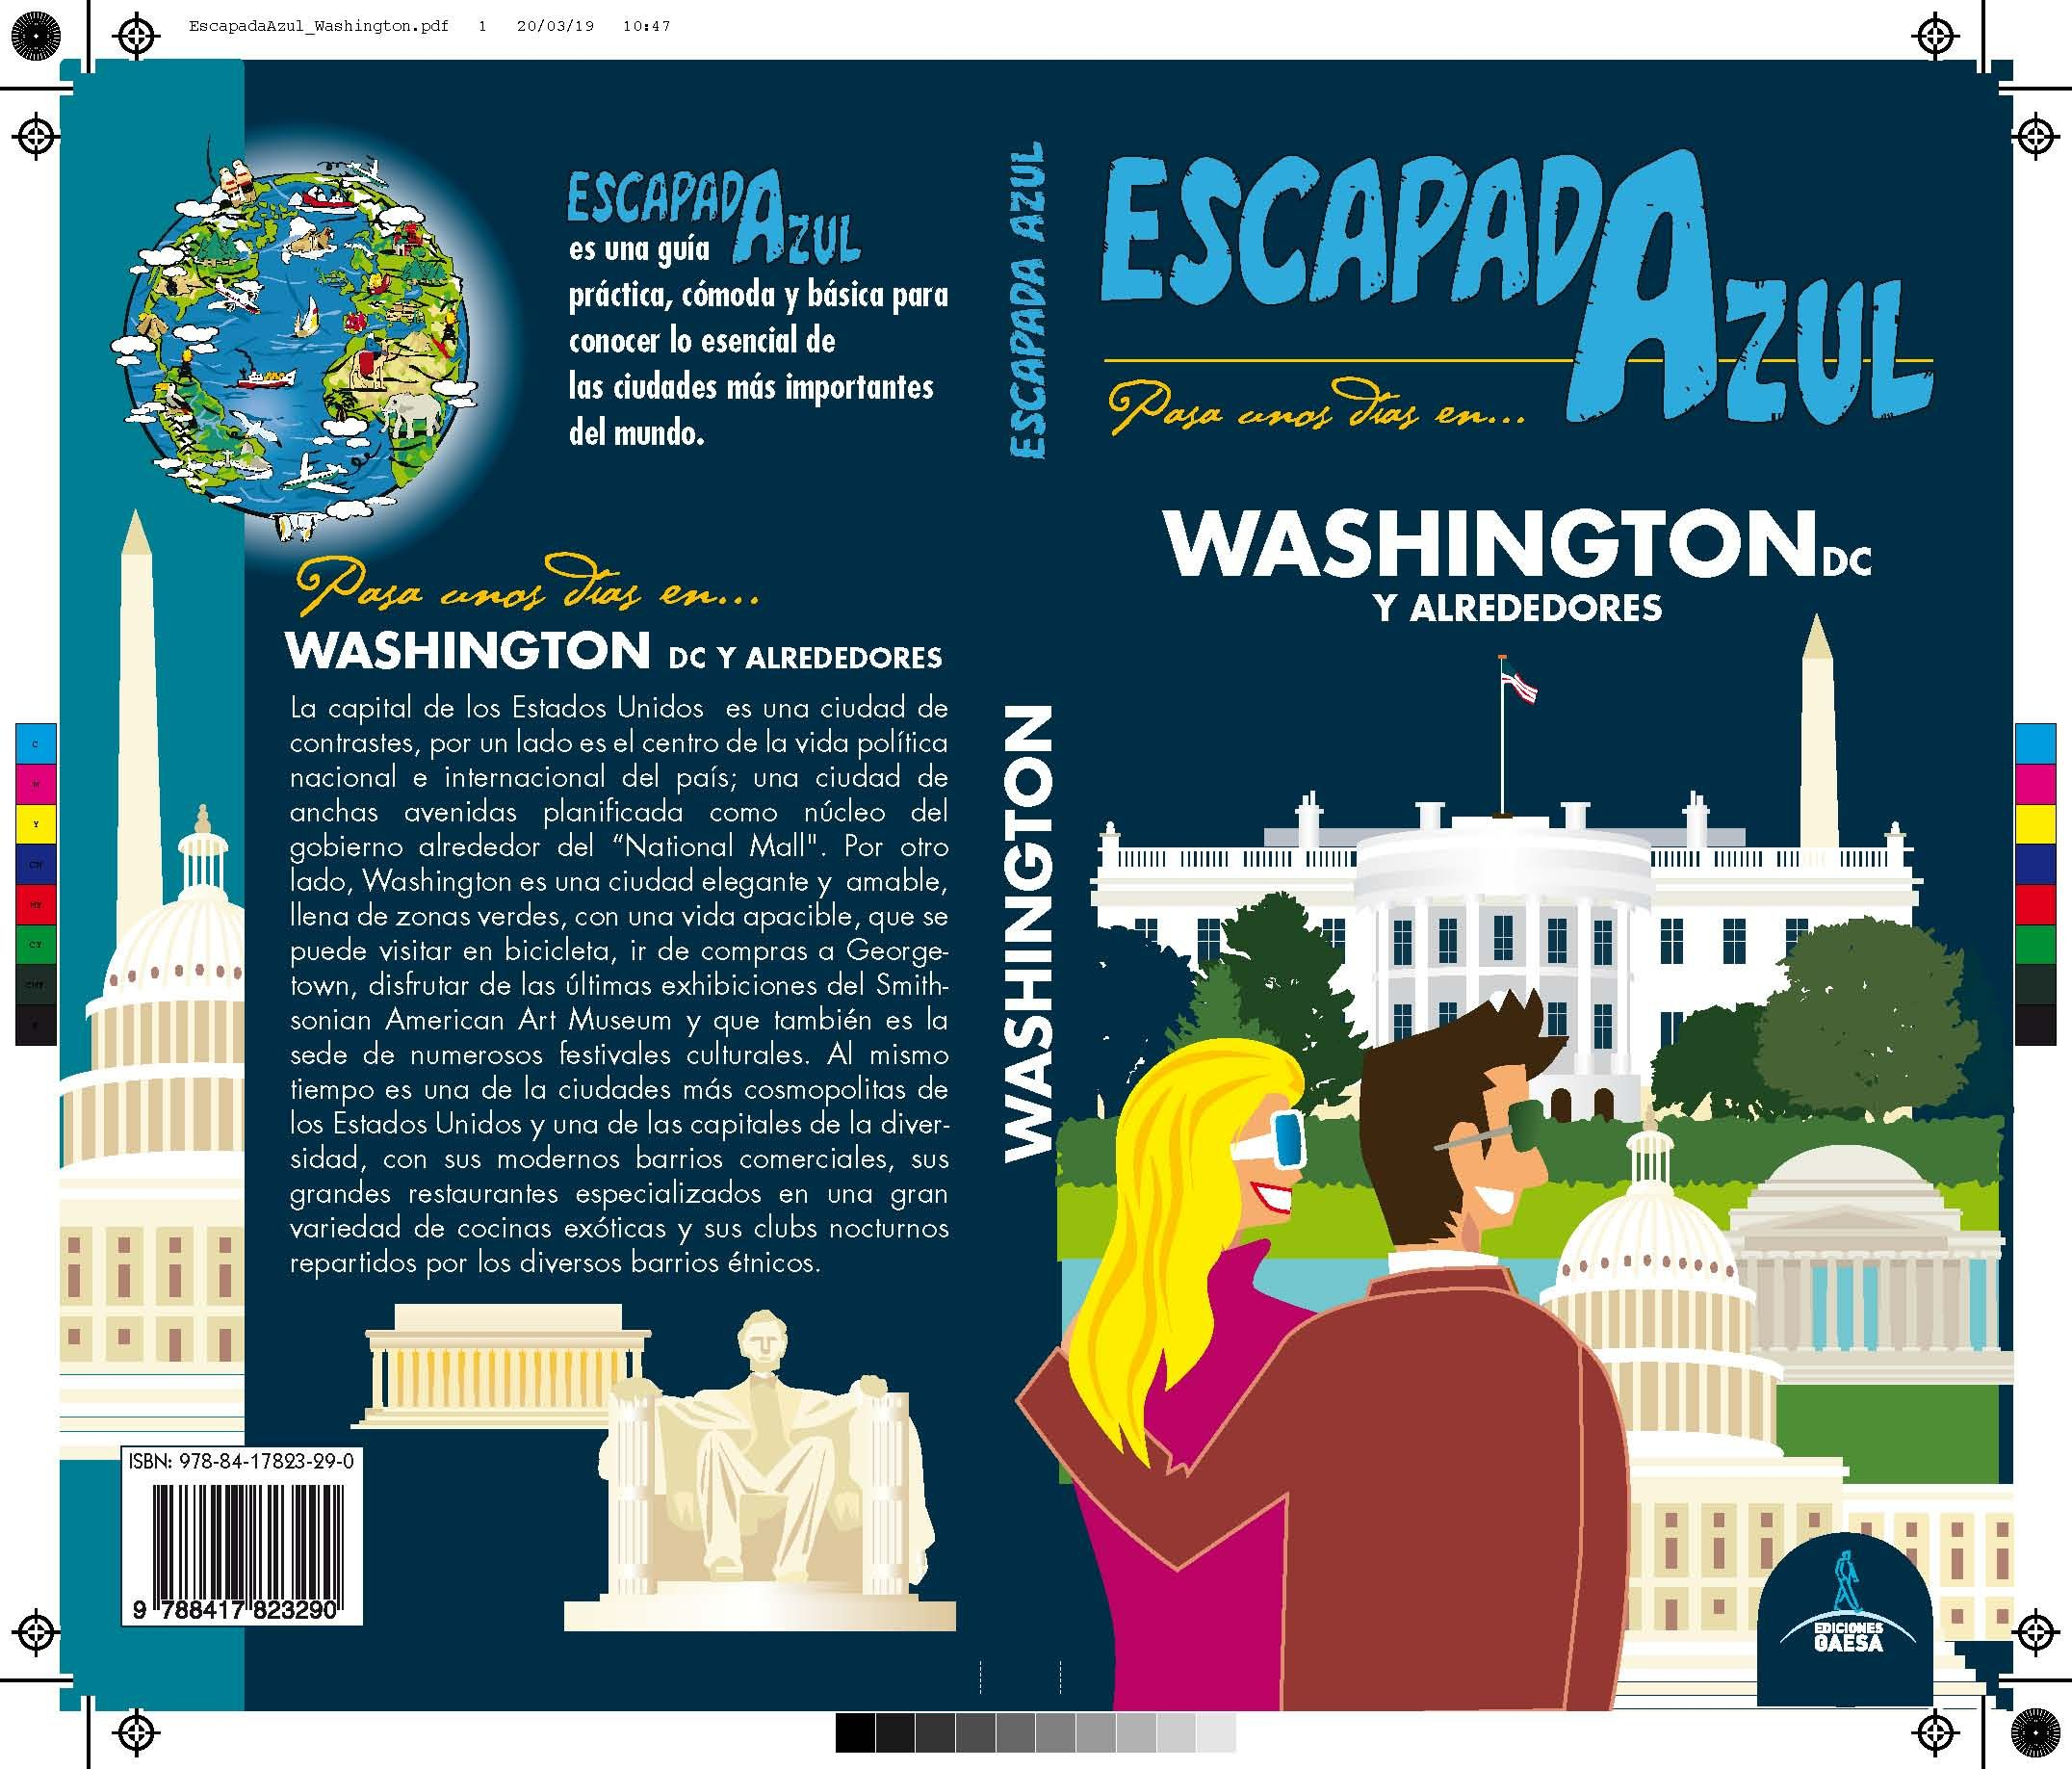 WASHINGTON ESCAPADA AZUL